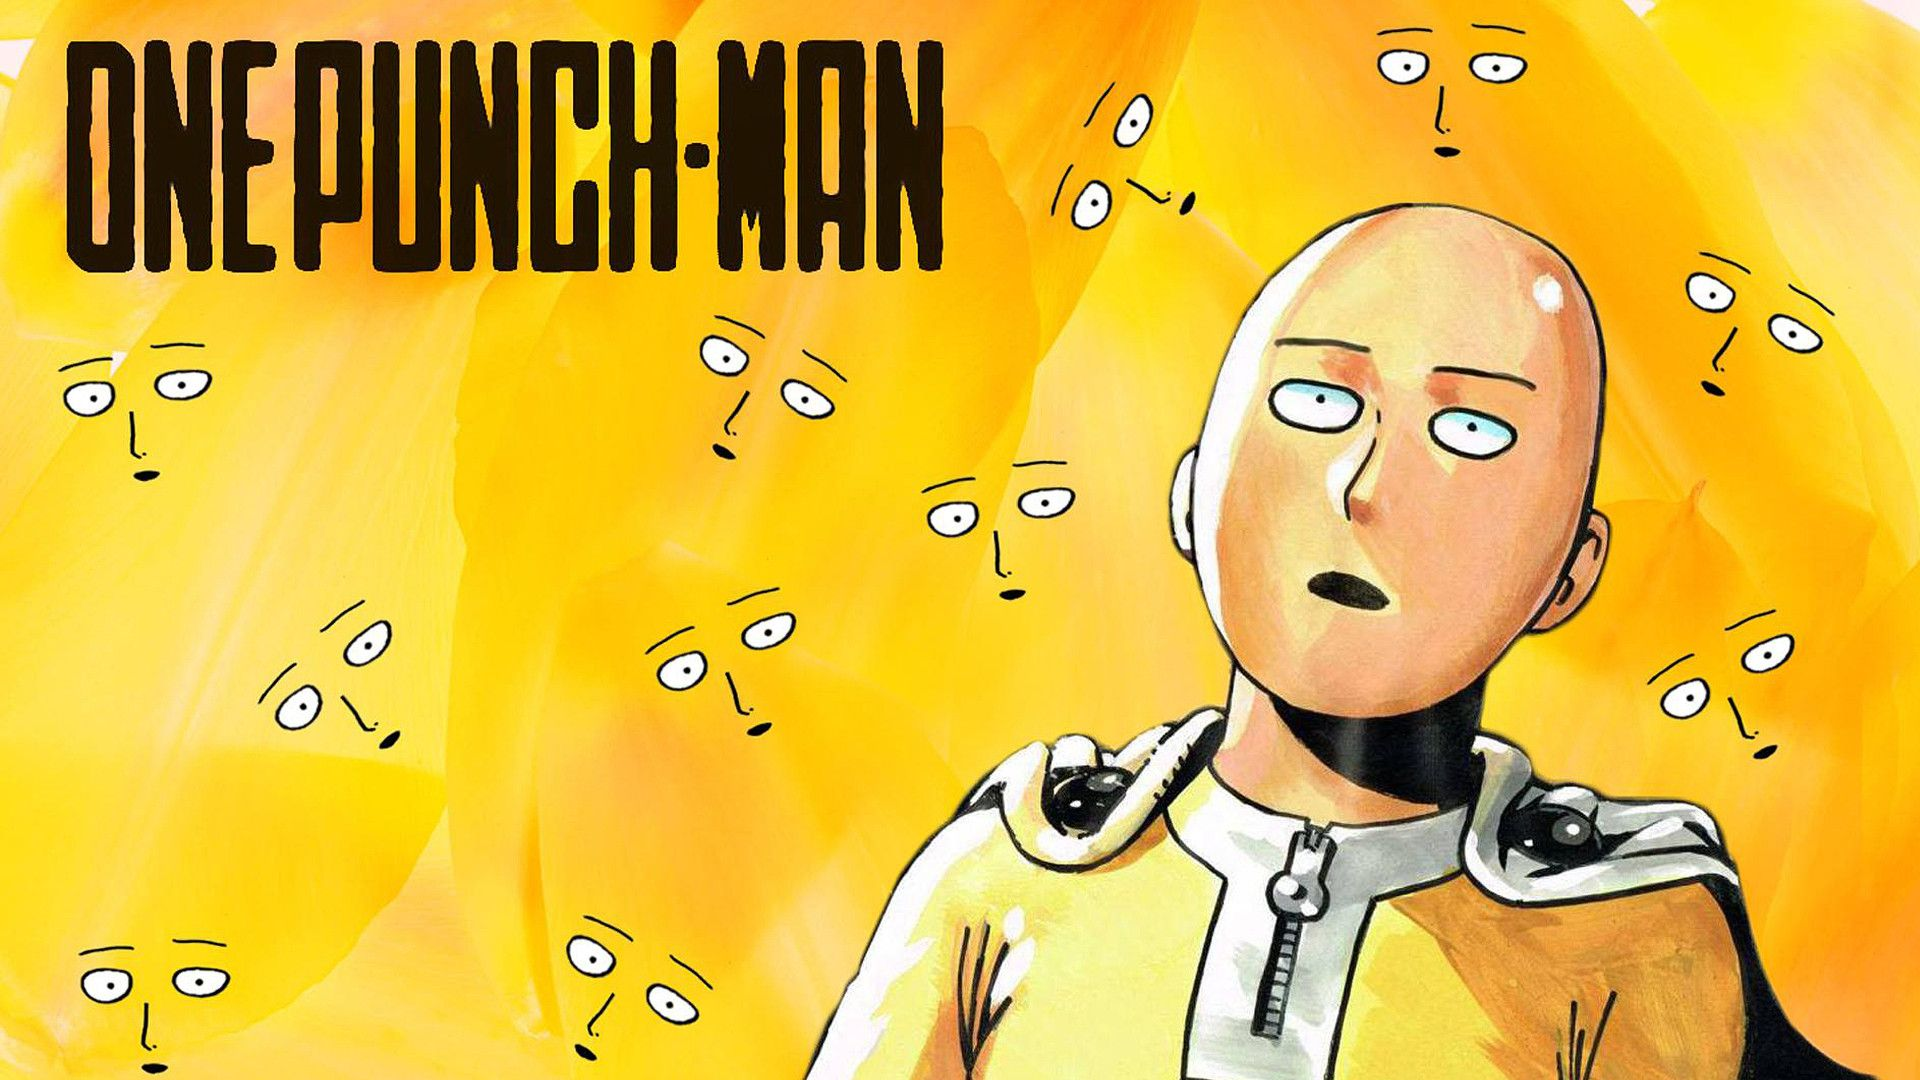 One Punch Man Hd Wallpaper 1920x1080 Id 56055 One Punch Man Anime One Punch Man One Punch Man Manga